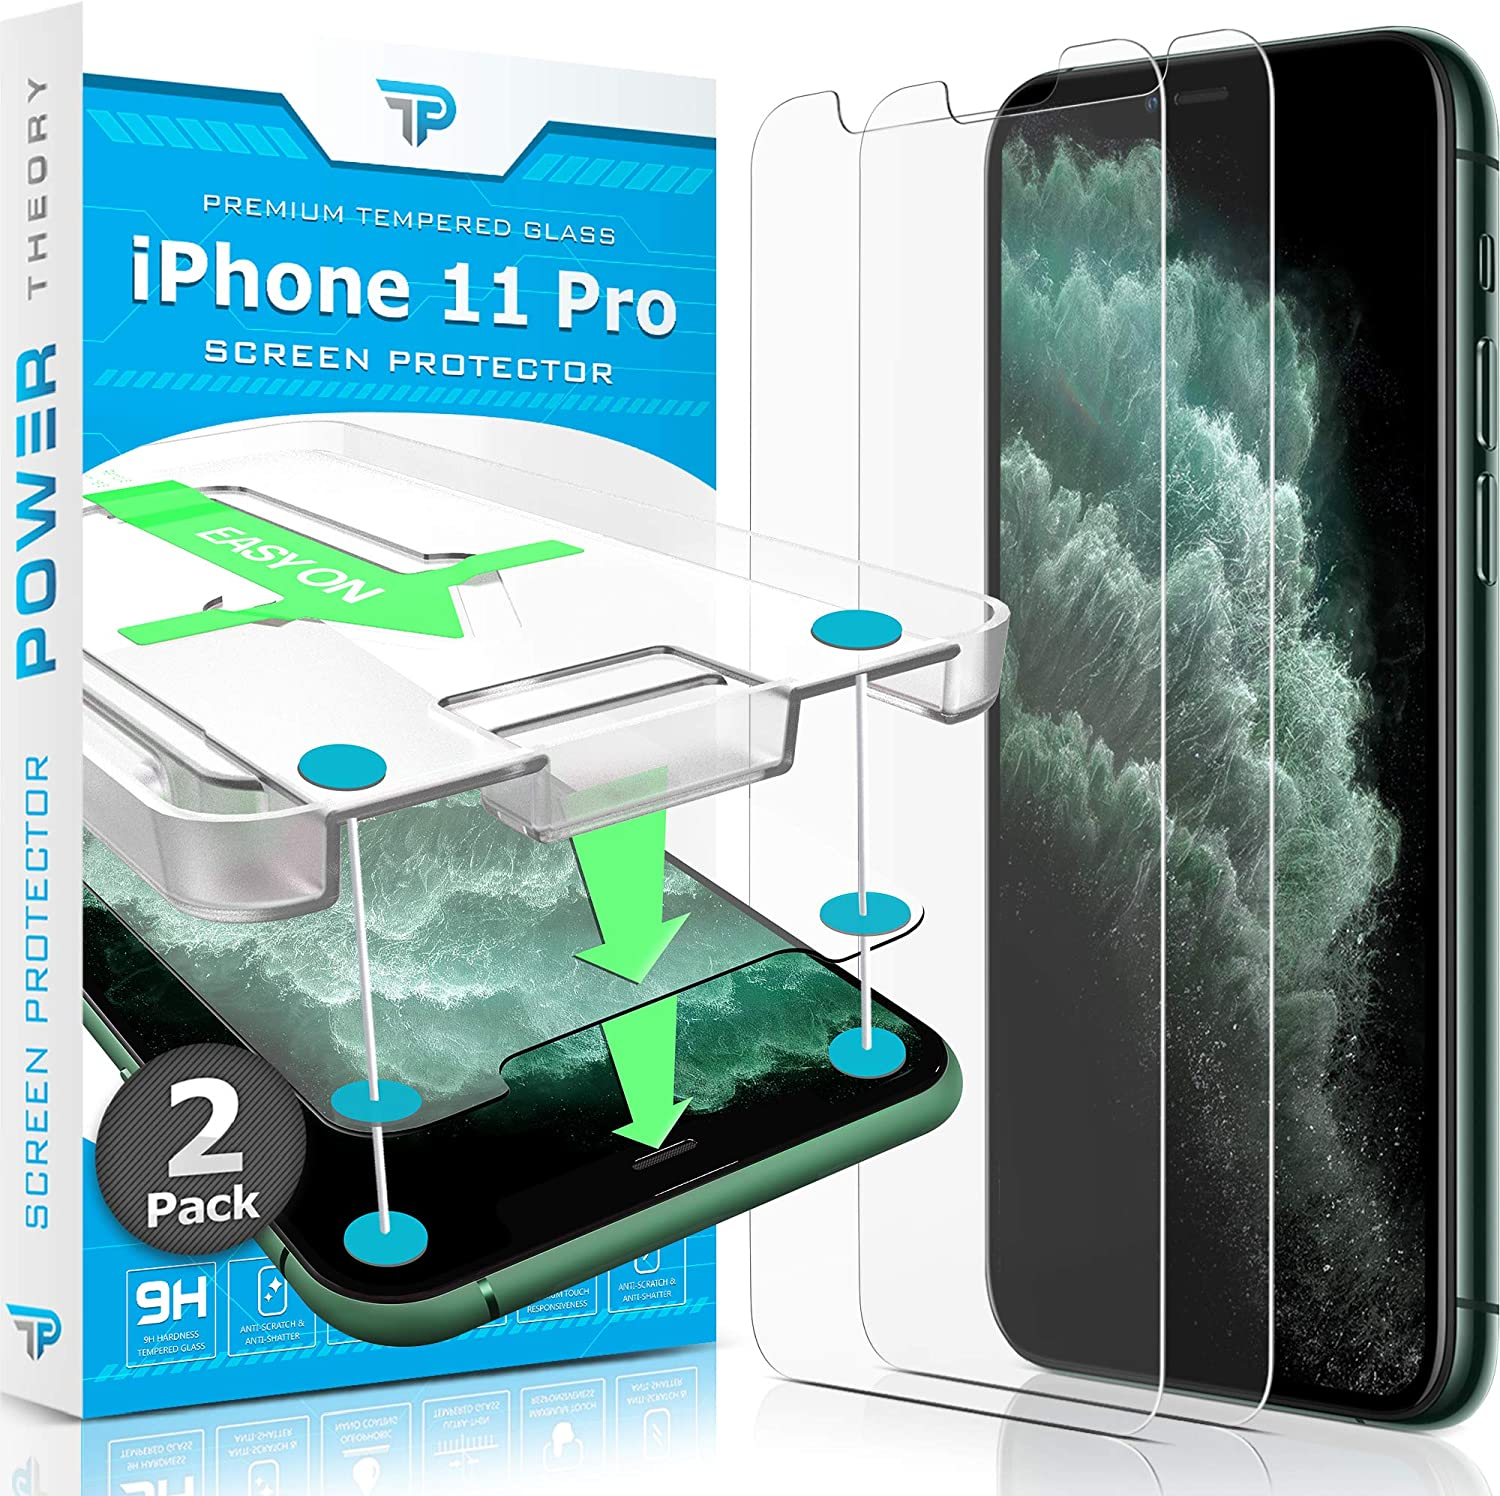 Amazon Com Power Theory Screen Protector For Iphone 11 Pro 2 Pack With Easy Install Kit Premium Tempered Glass For Iphone 11pro